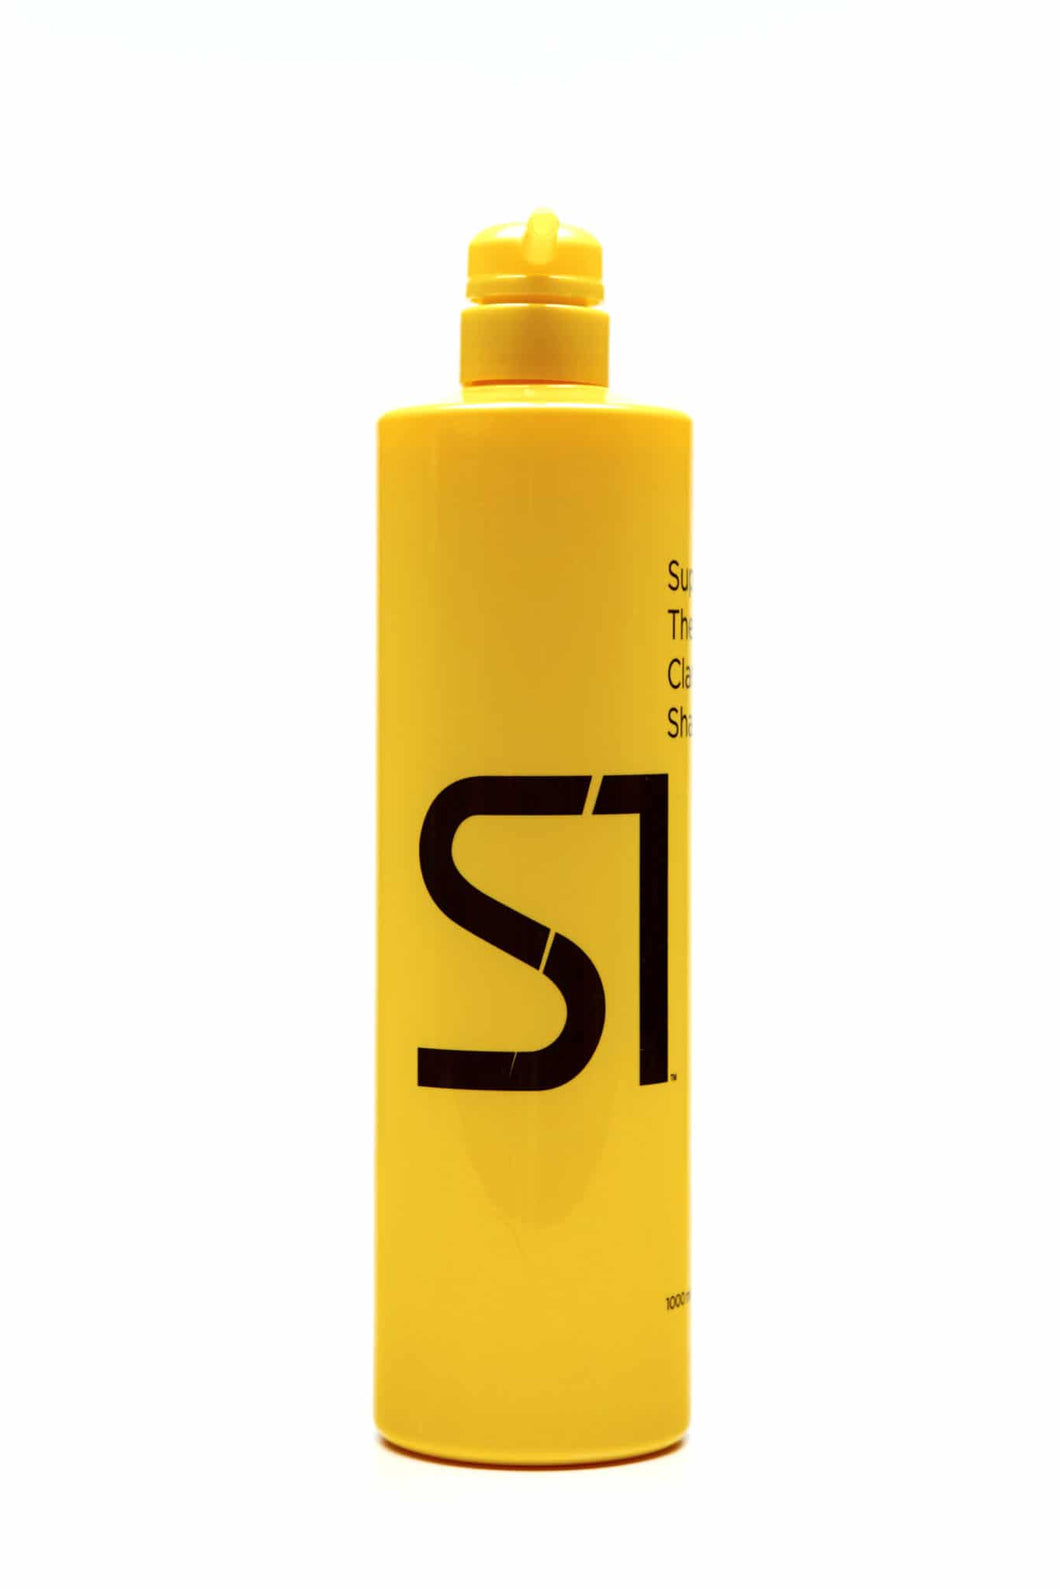 Professional Colour Shampoo 1 Liter - Seamless1